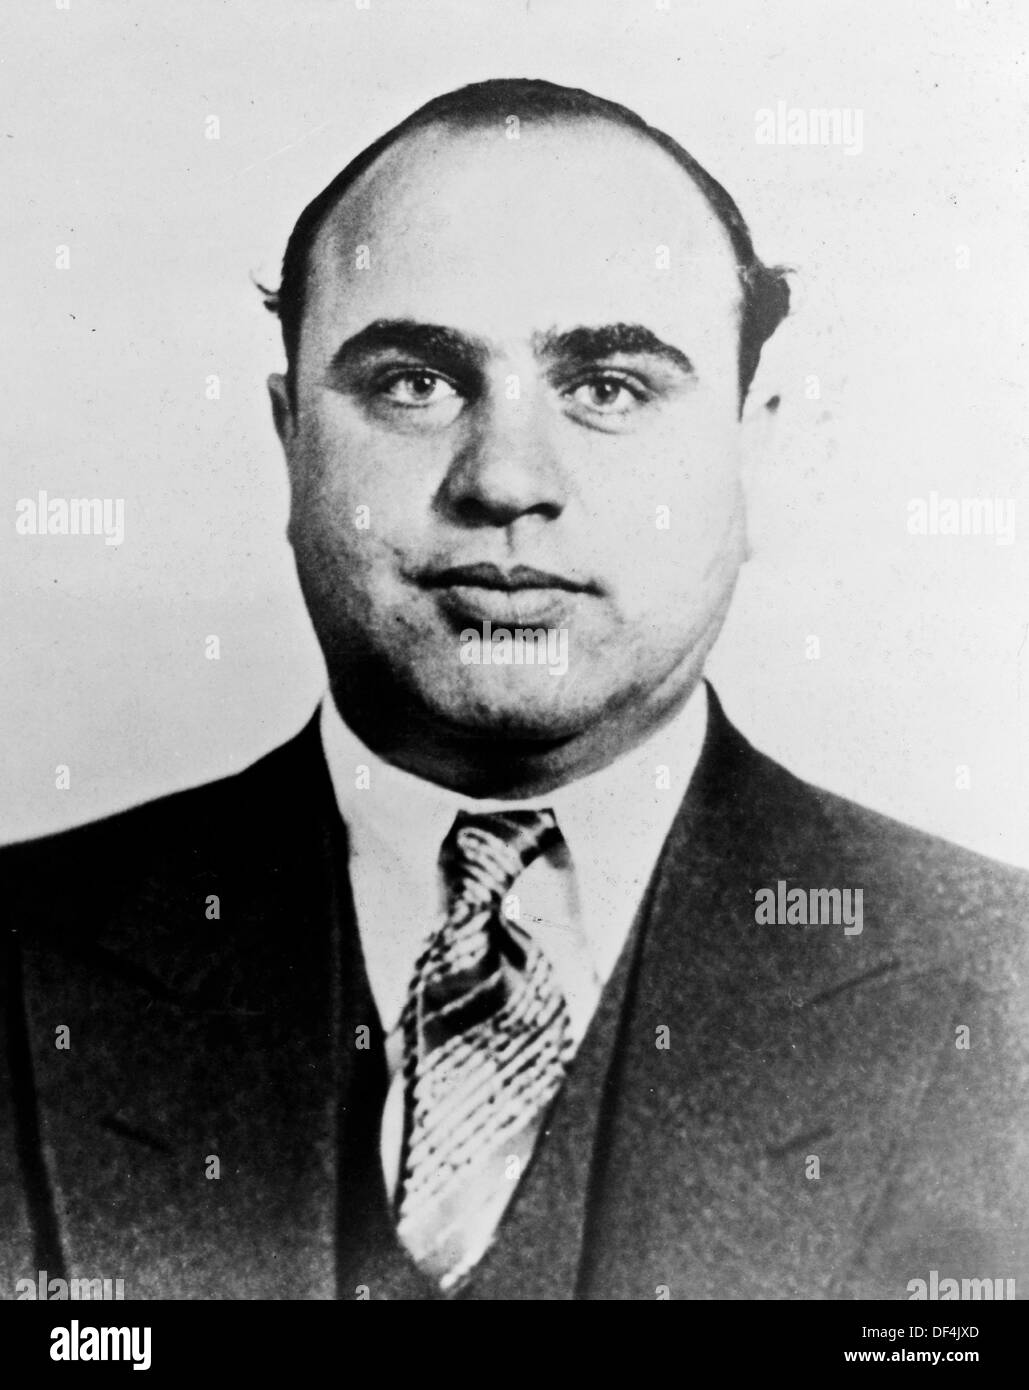 """a history of al capone an american gangster Gangster: history of professional  members of al capone's  organized gangs divided the great american cities into """"territories,"""" in each of which a ."""